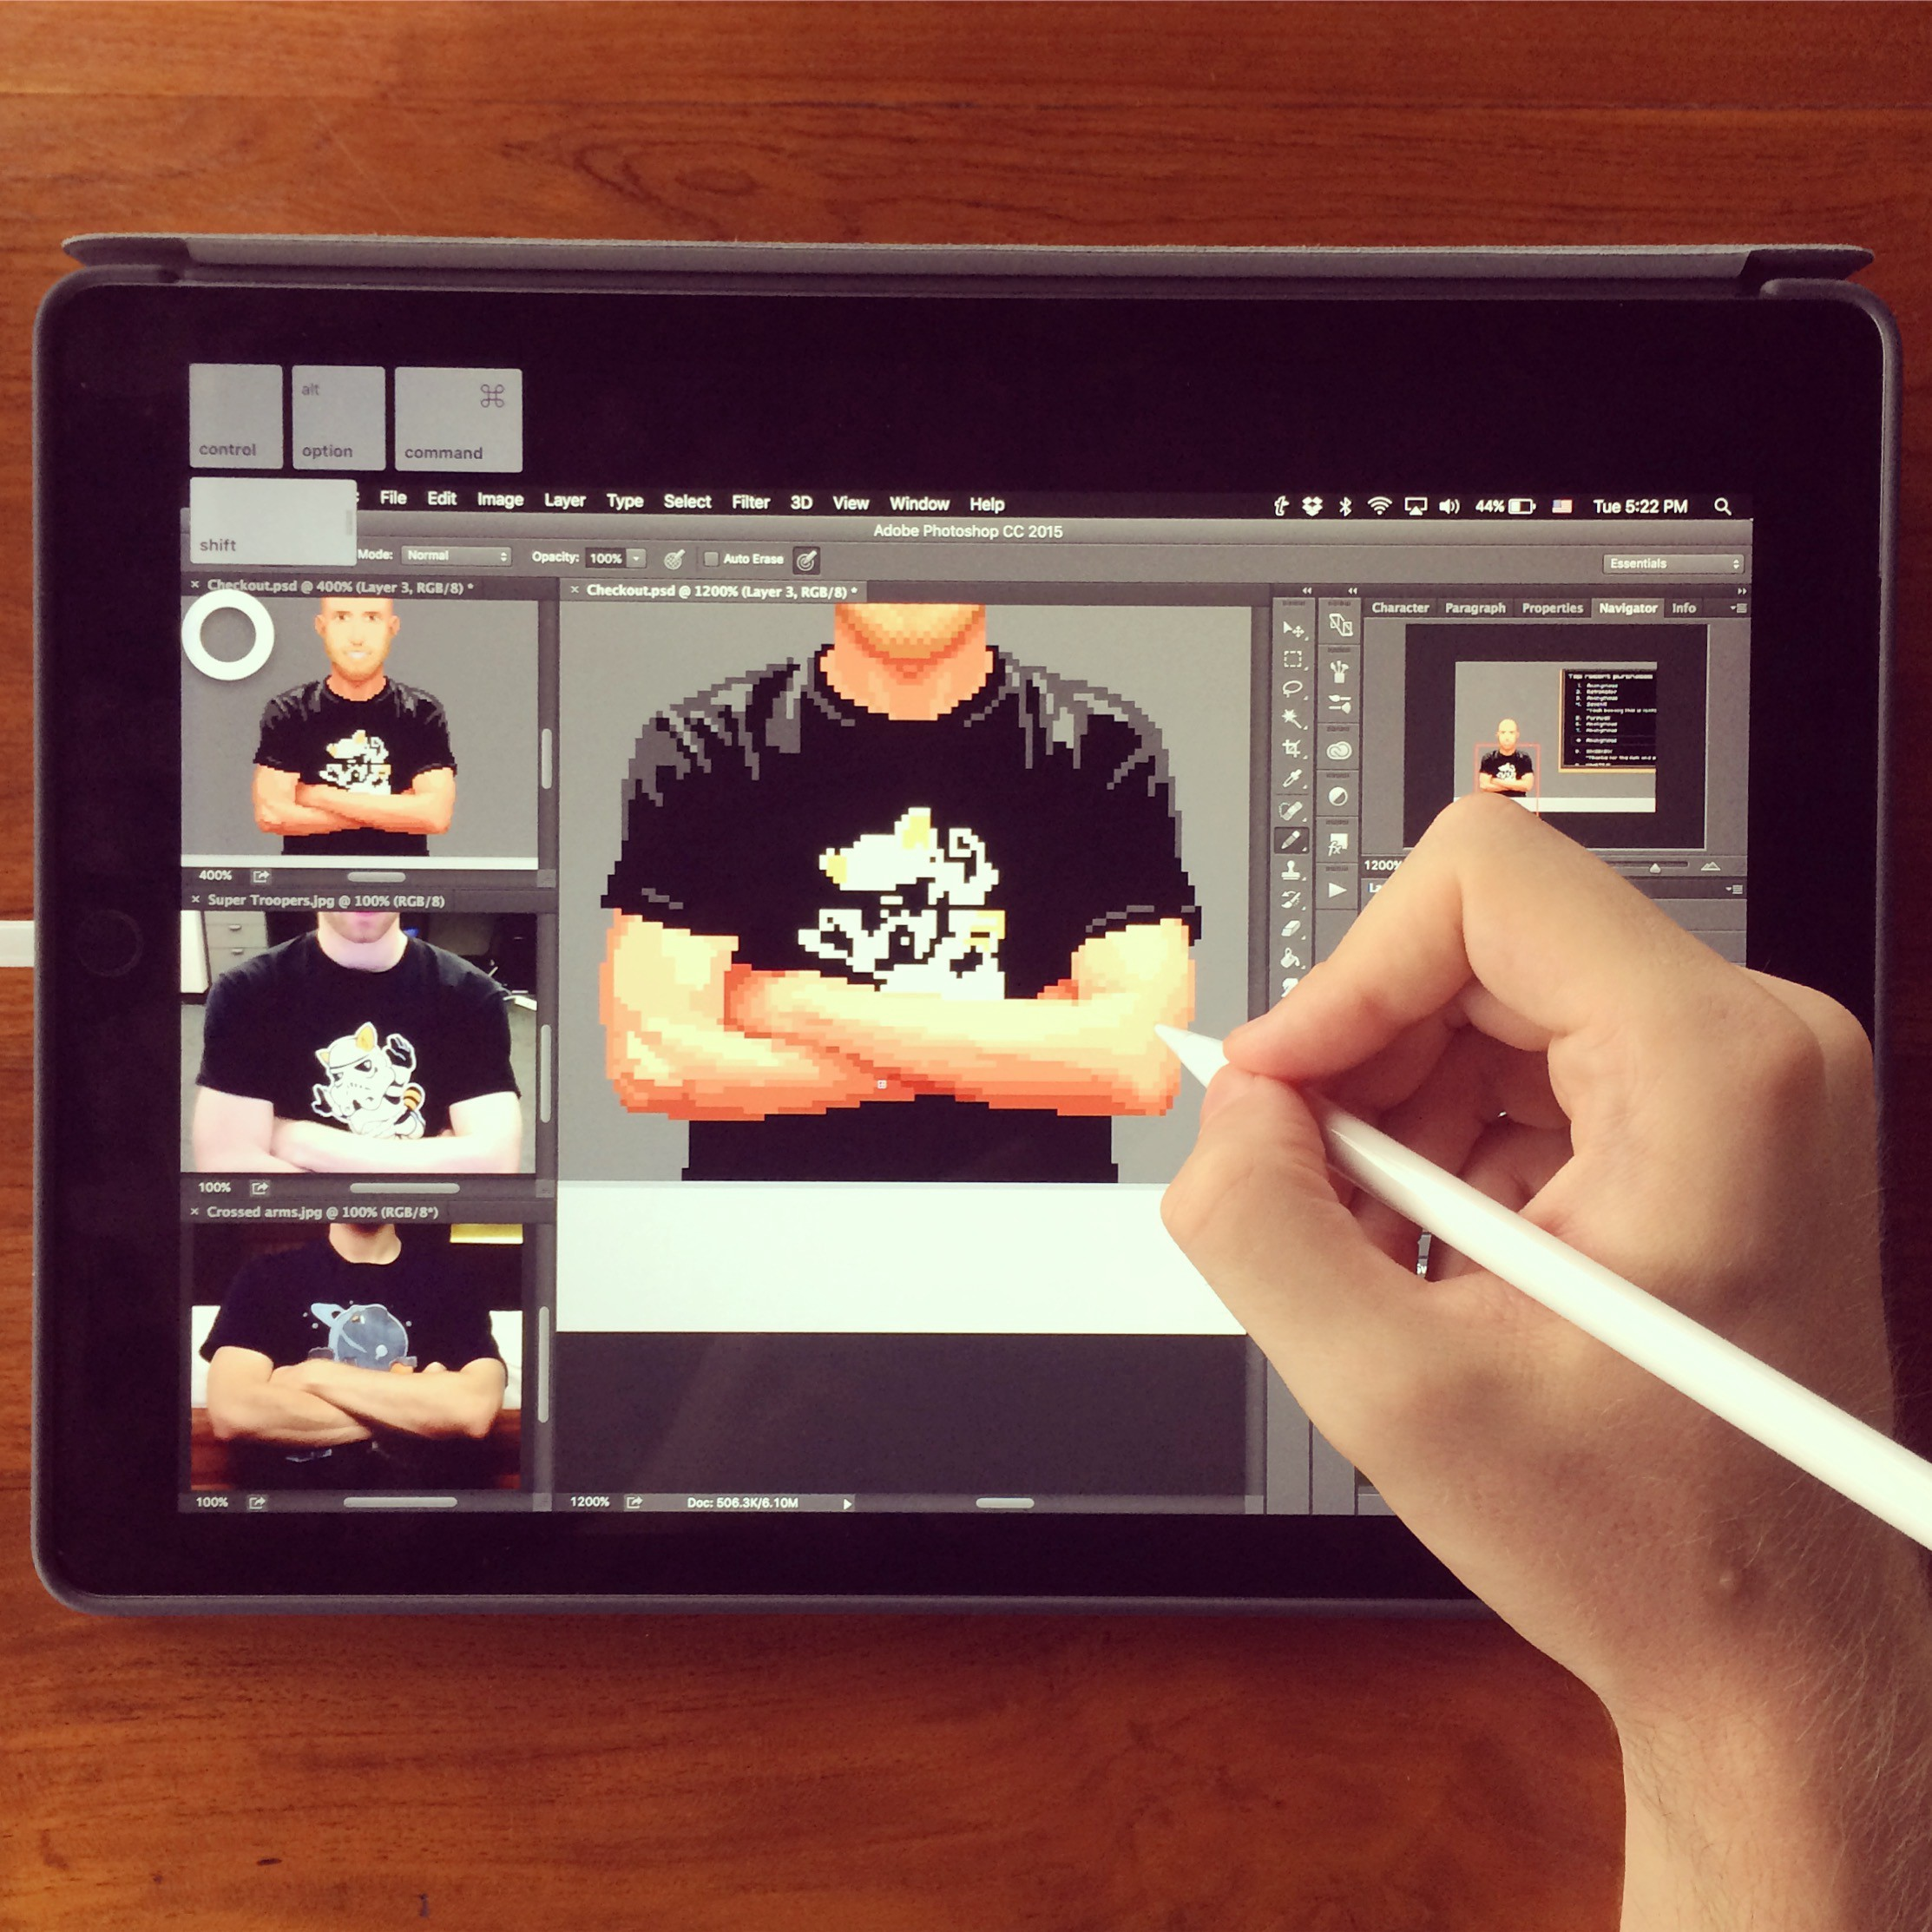 Life with the iPad Pro and Apple Pencil - Practical Pixels